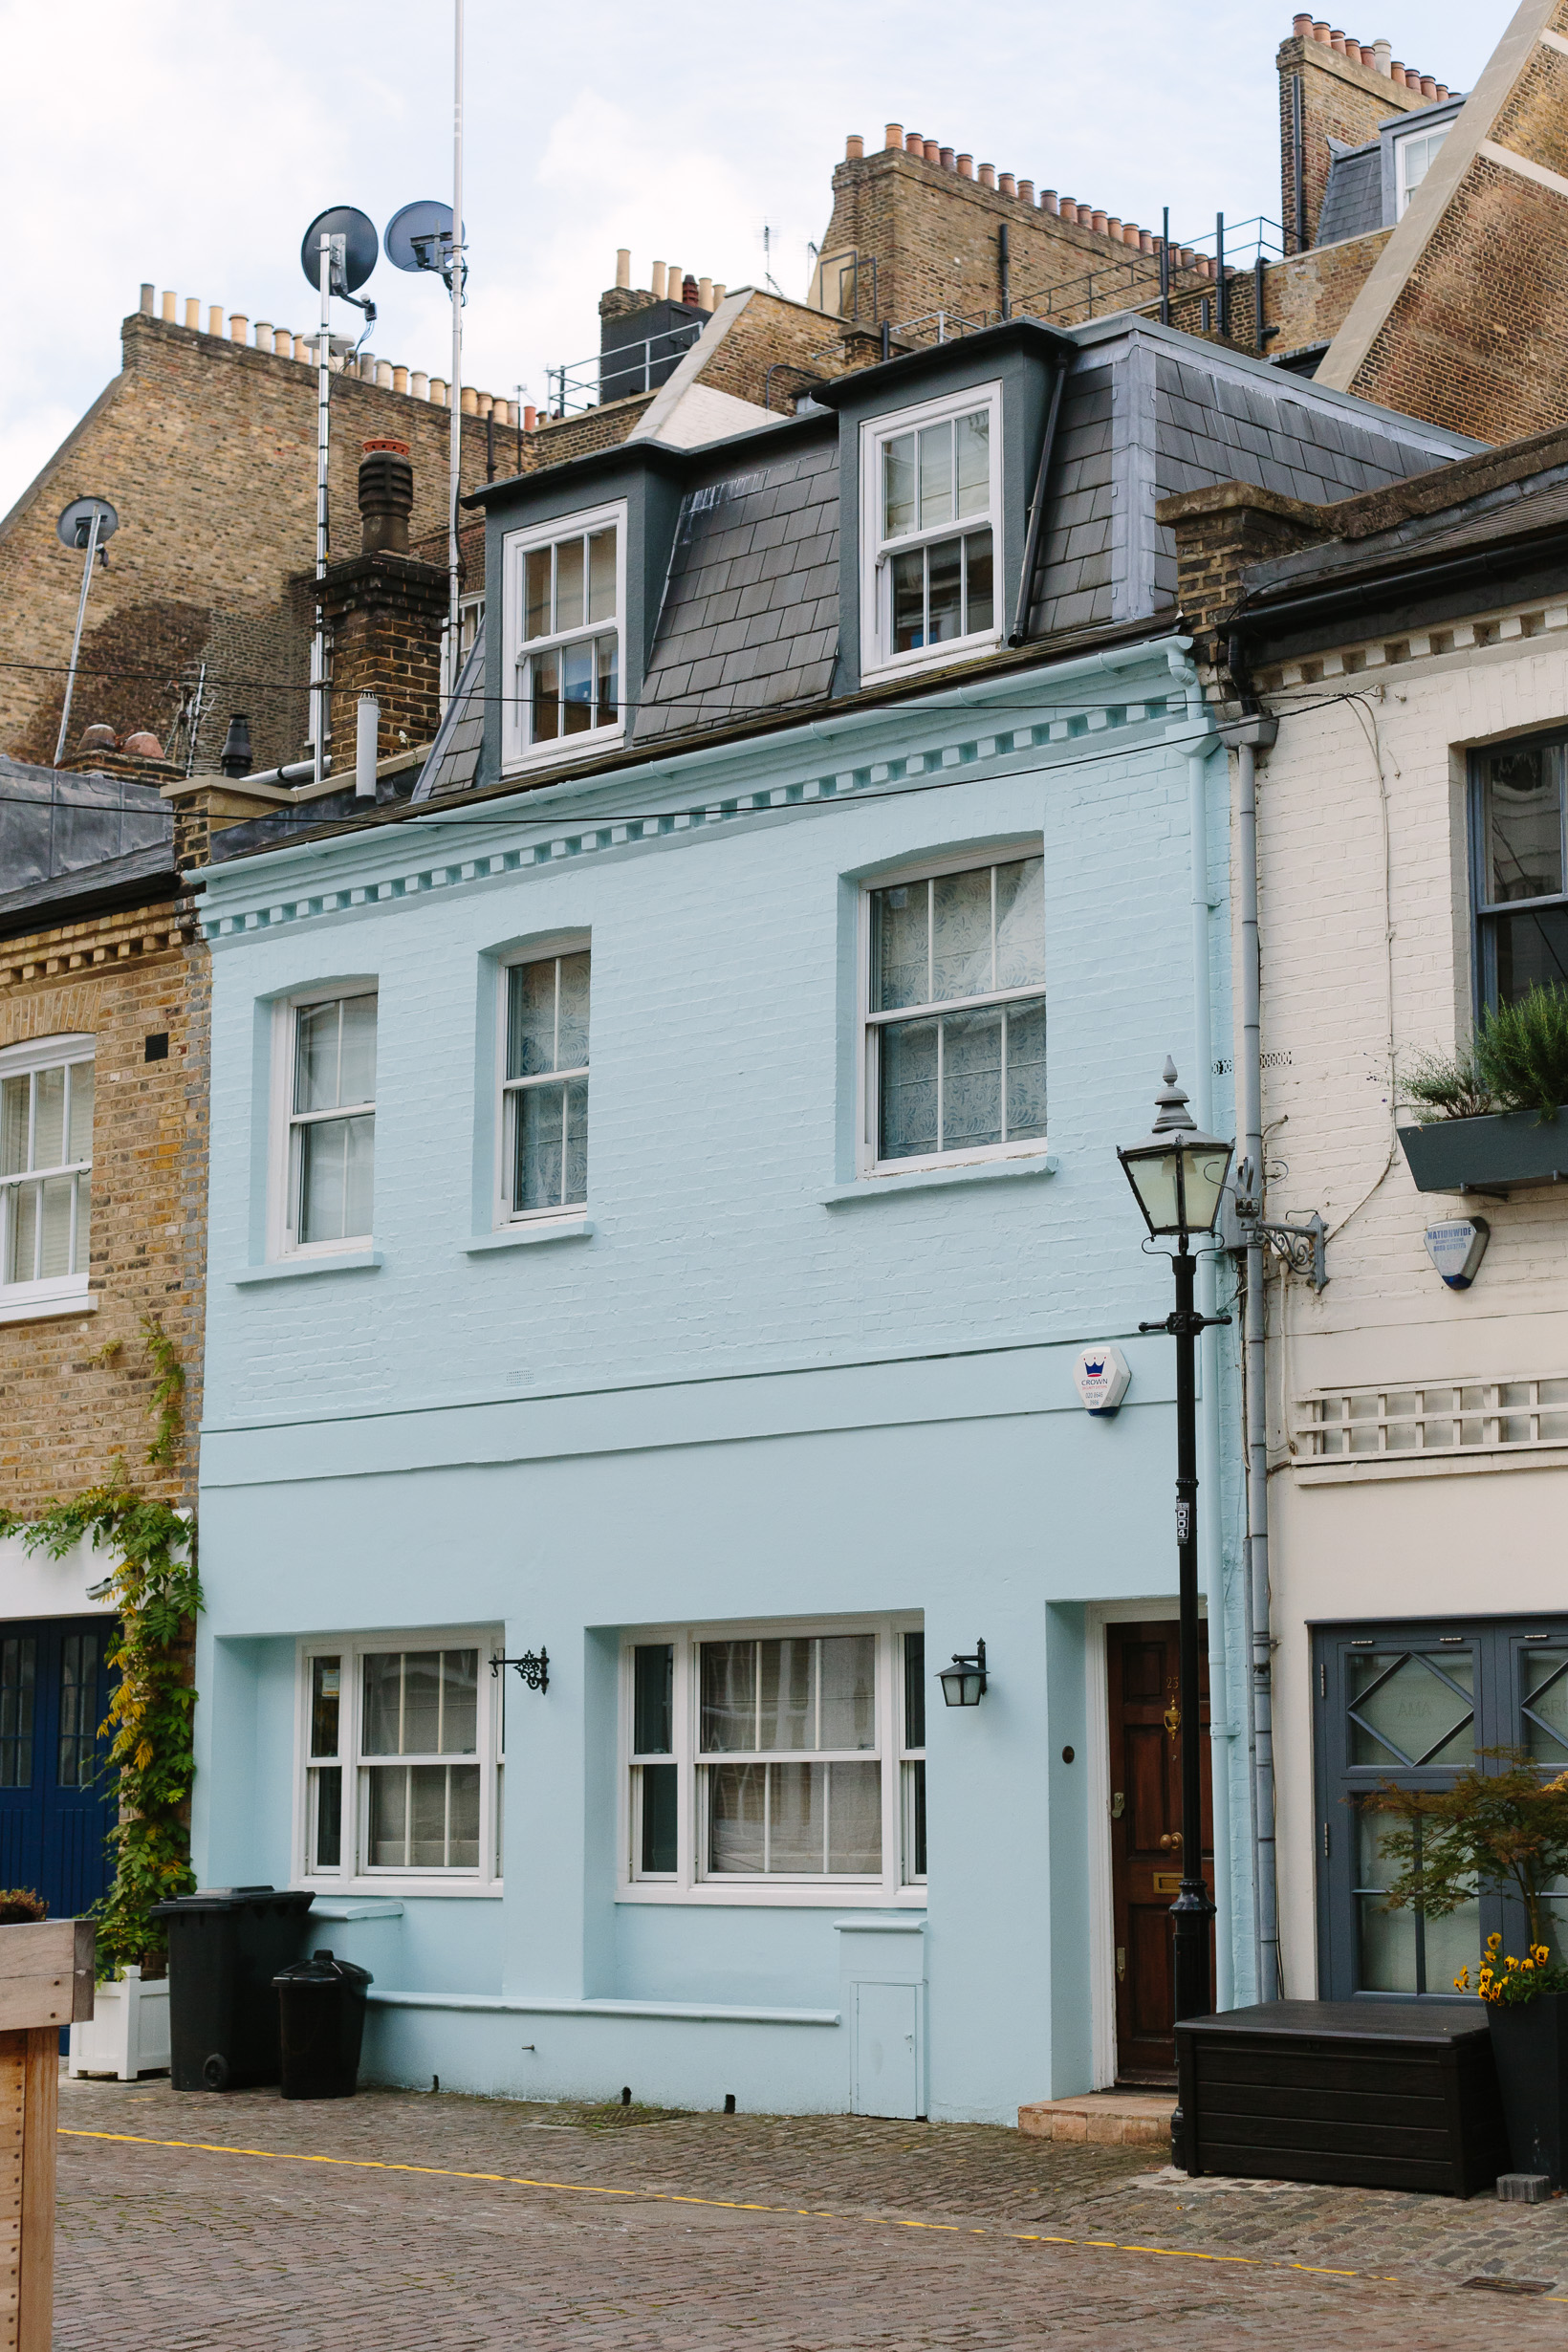 colorful-houses-in-london-3754